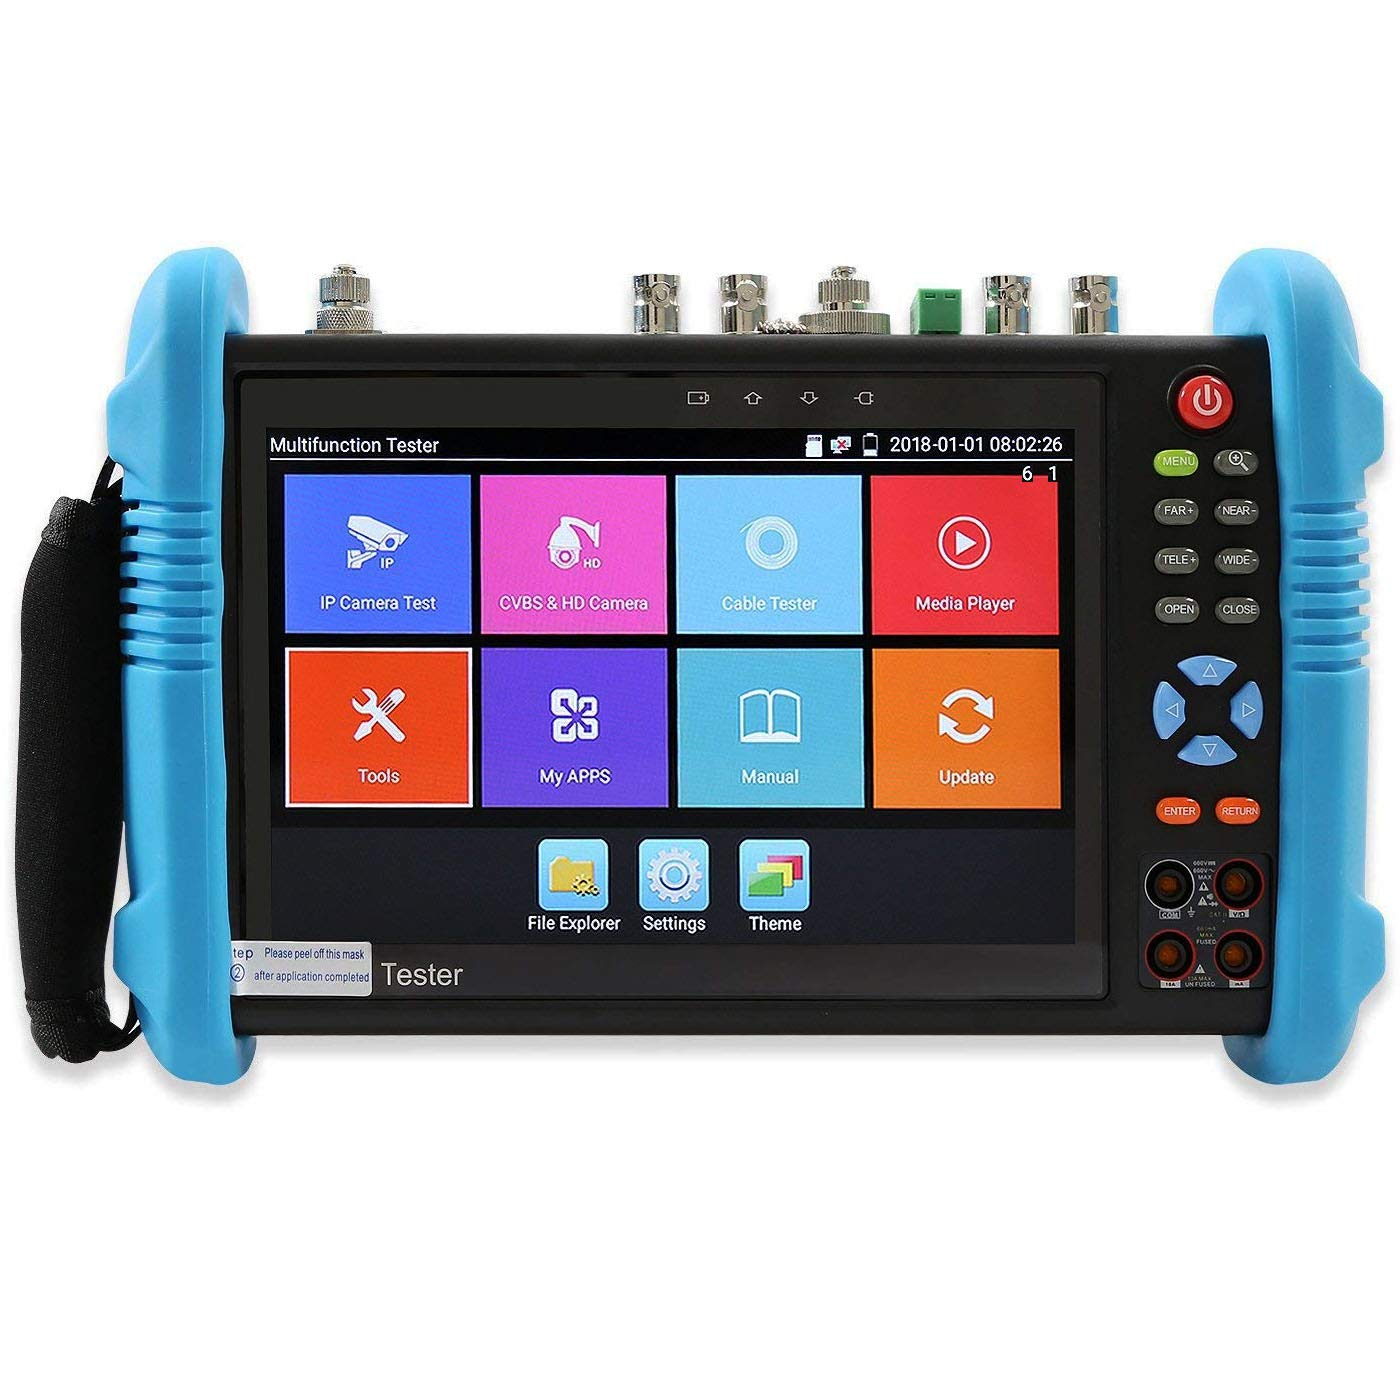 Rsrteng IPC-9800MOVTADHS Plus Full Features CCTV Camera Tester 7-inch IPS Touch Screen Monitor CCTV Tester with HD-TVI HD-CVI AHD SDI IP Camera Support DMM OPM VFL TDR Features POE WiFi 4K H.265 HDMI by Rsrteng